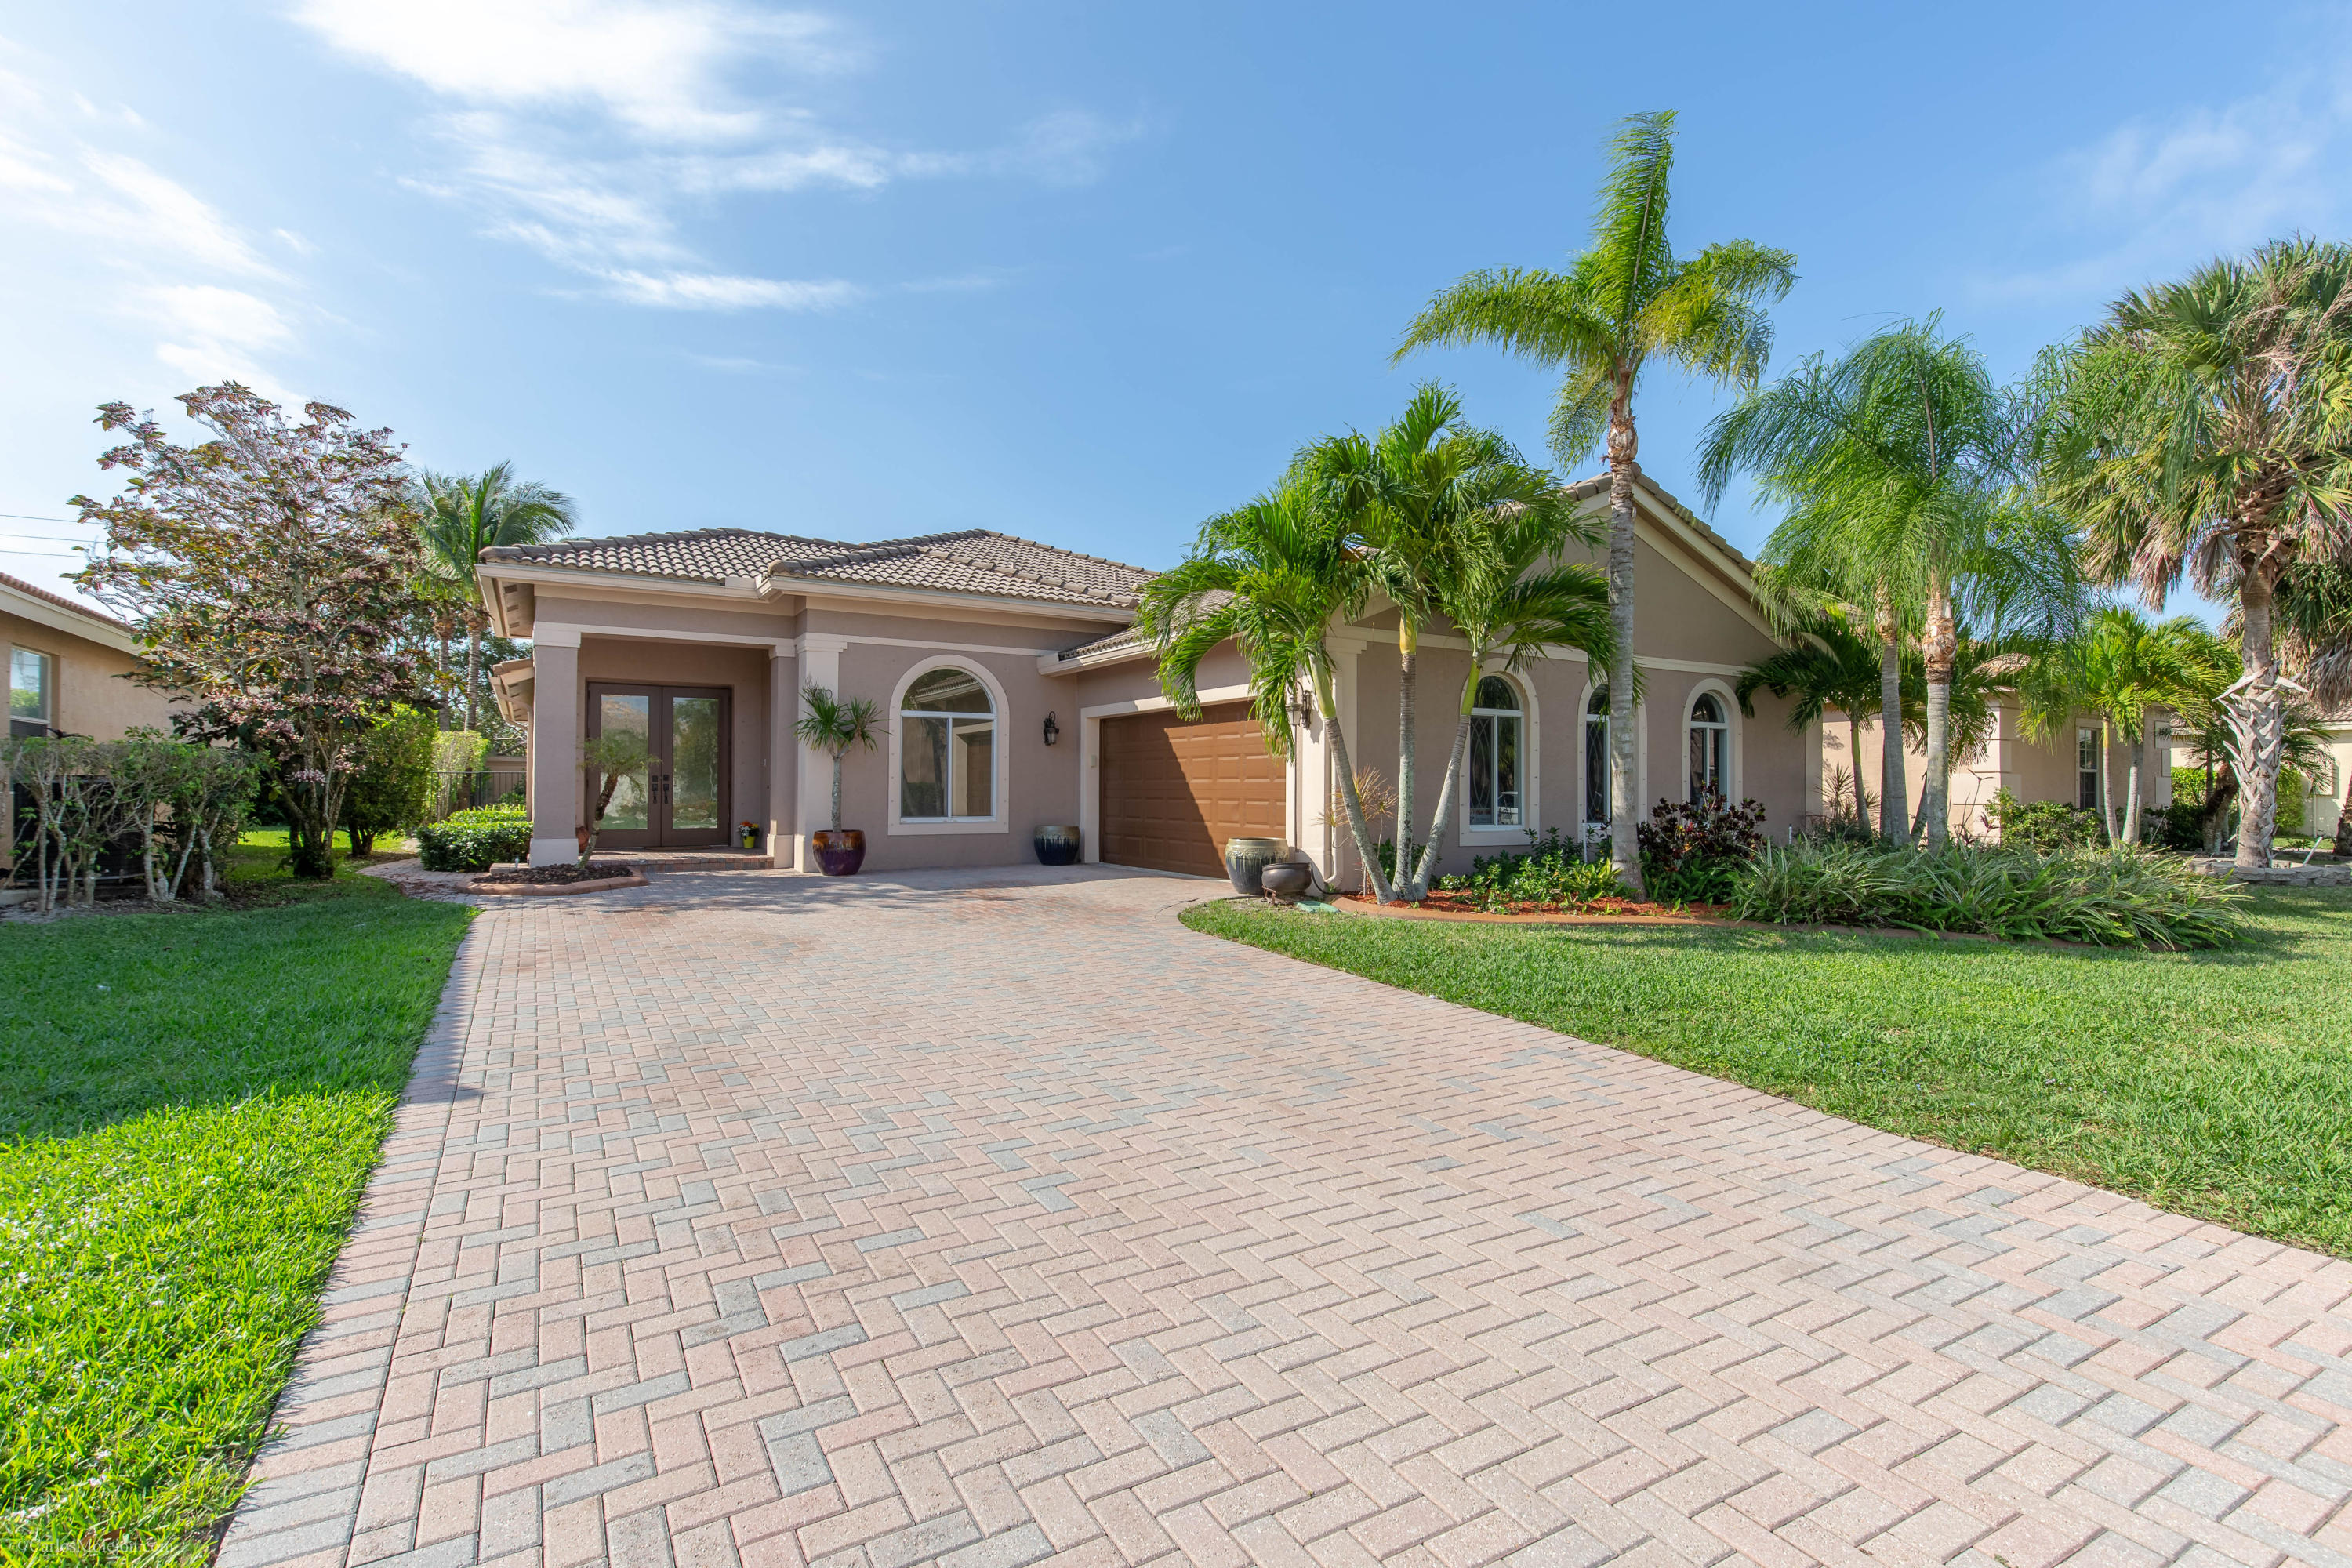 Home for sale in Bella Terra Royal Palm Beach Florida